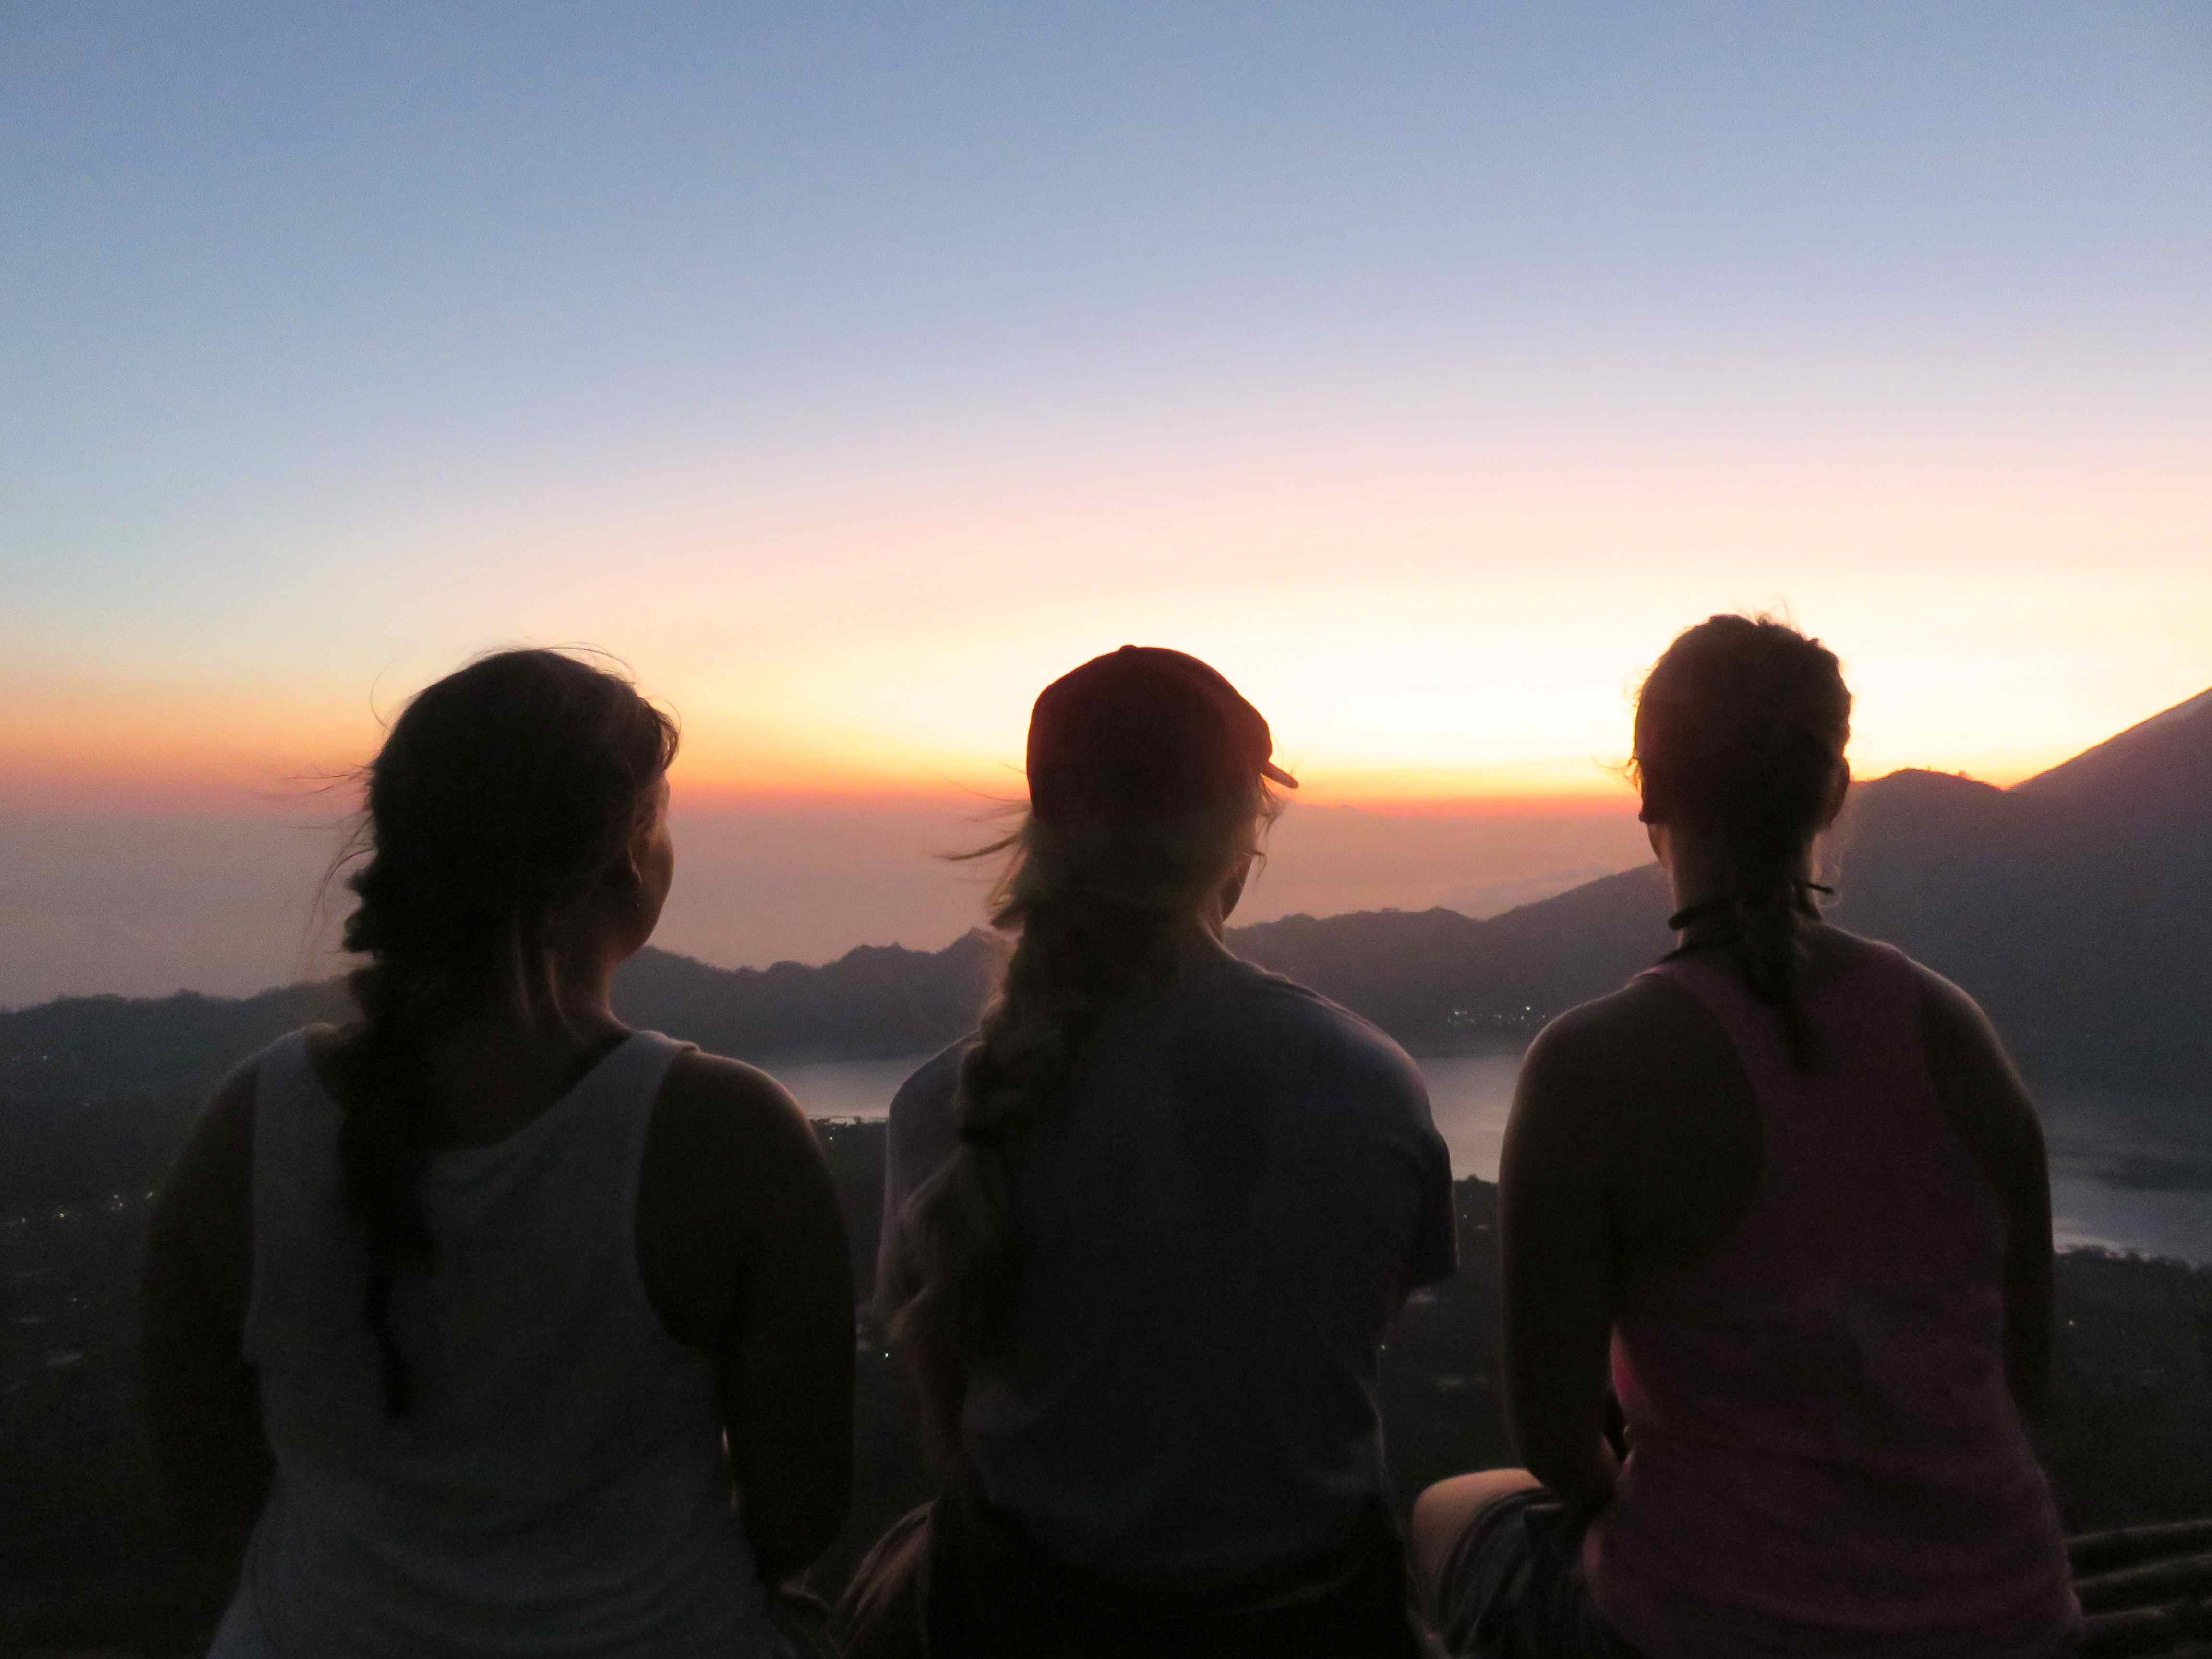 Waking up at 2 a.m., climbing a volcano to watch the sunrise over the mountains and ocean in Bali, Indonesia. I will always remember the life long friendships made, the places I'v been and the memories I've made.